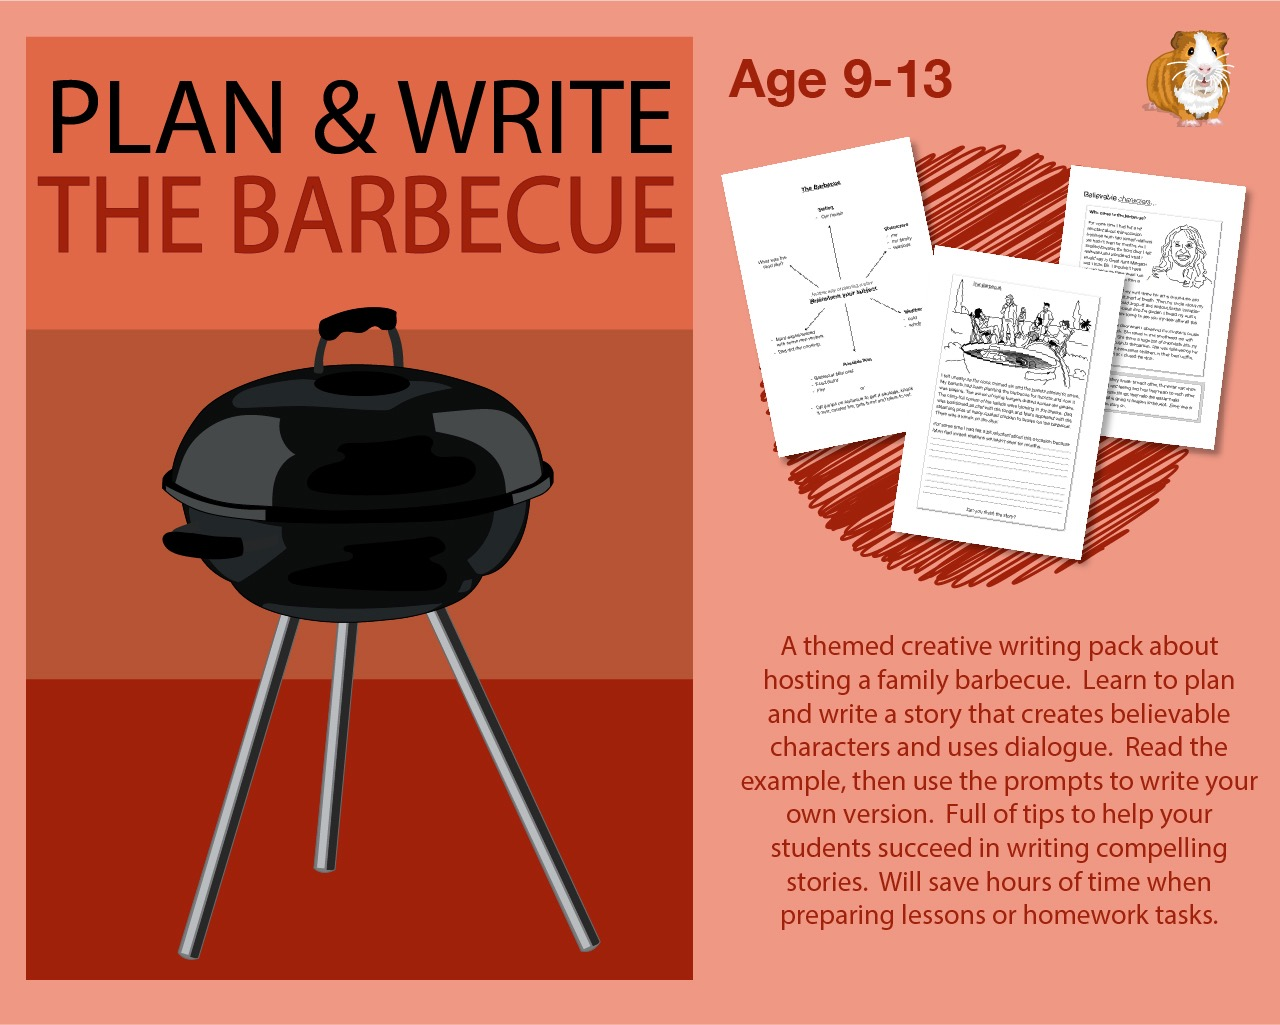 Plan And Write A Story Called 'The Barbecue' (9-12 years)